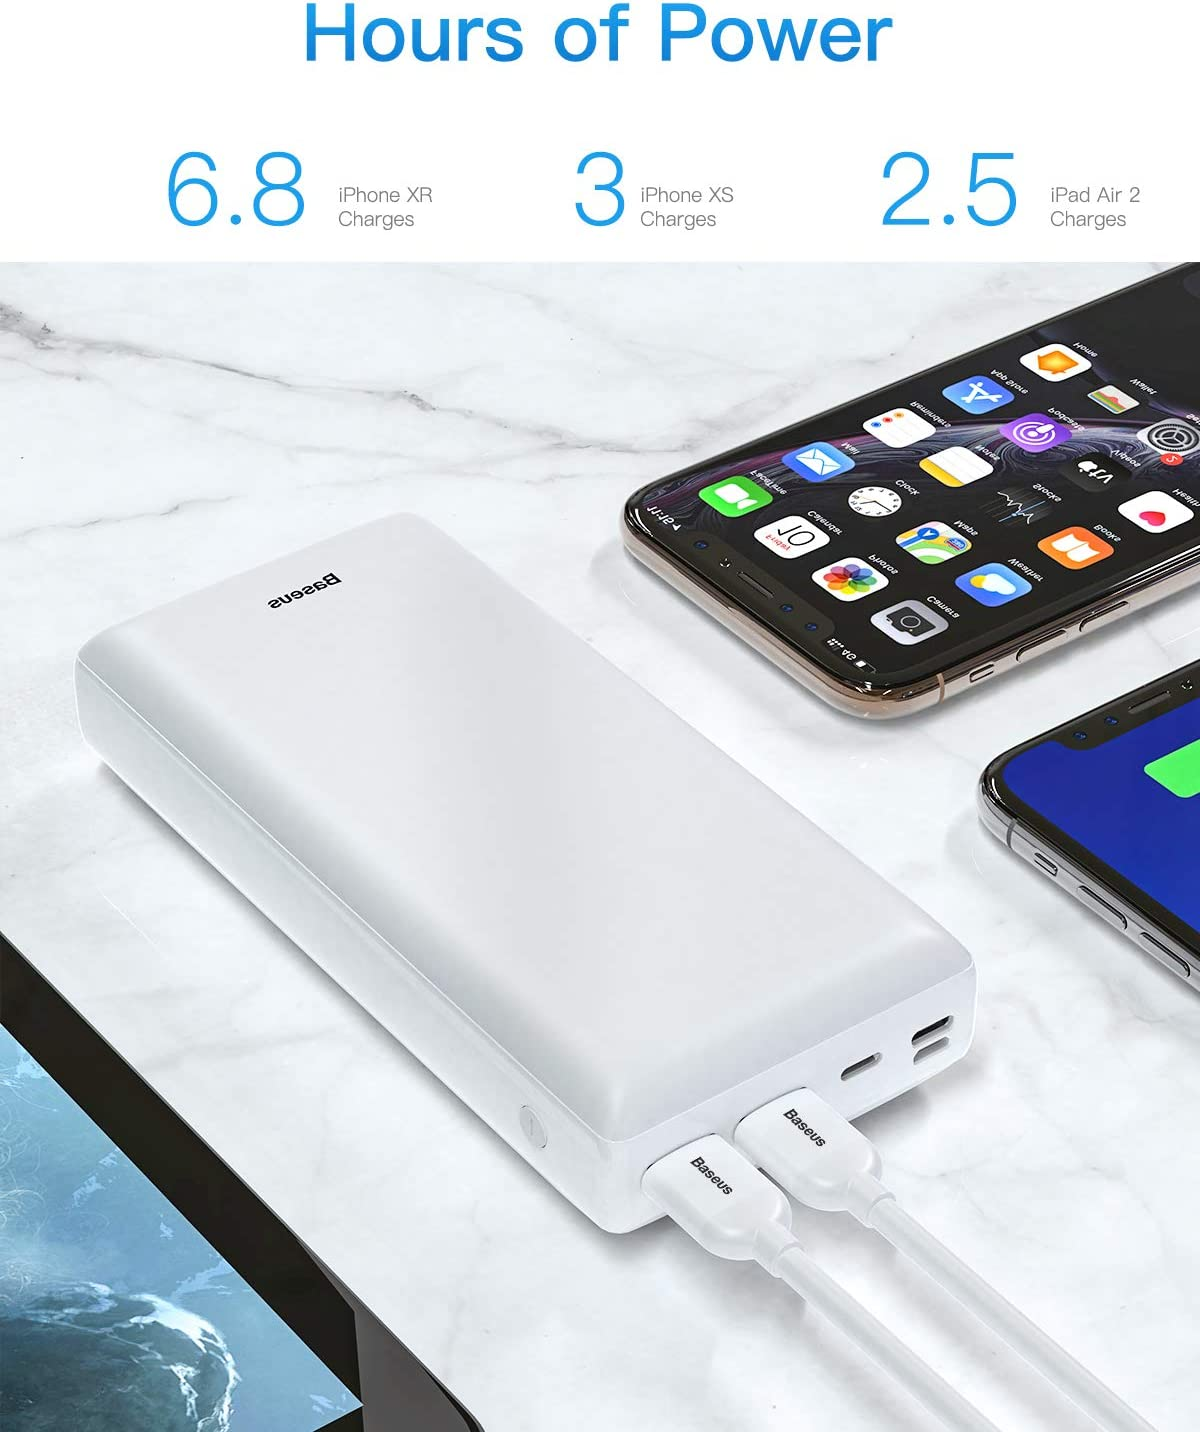 USB-C Laptops and More Samsung Galaxy Baseus 3A Fast Charging Portable Charger with 3 Speed Recharging Power Bank 30000mah Black Mac 3 Output Port Portable Charger for iPhone 11 Pro Max iPad